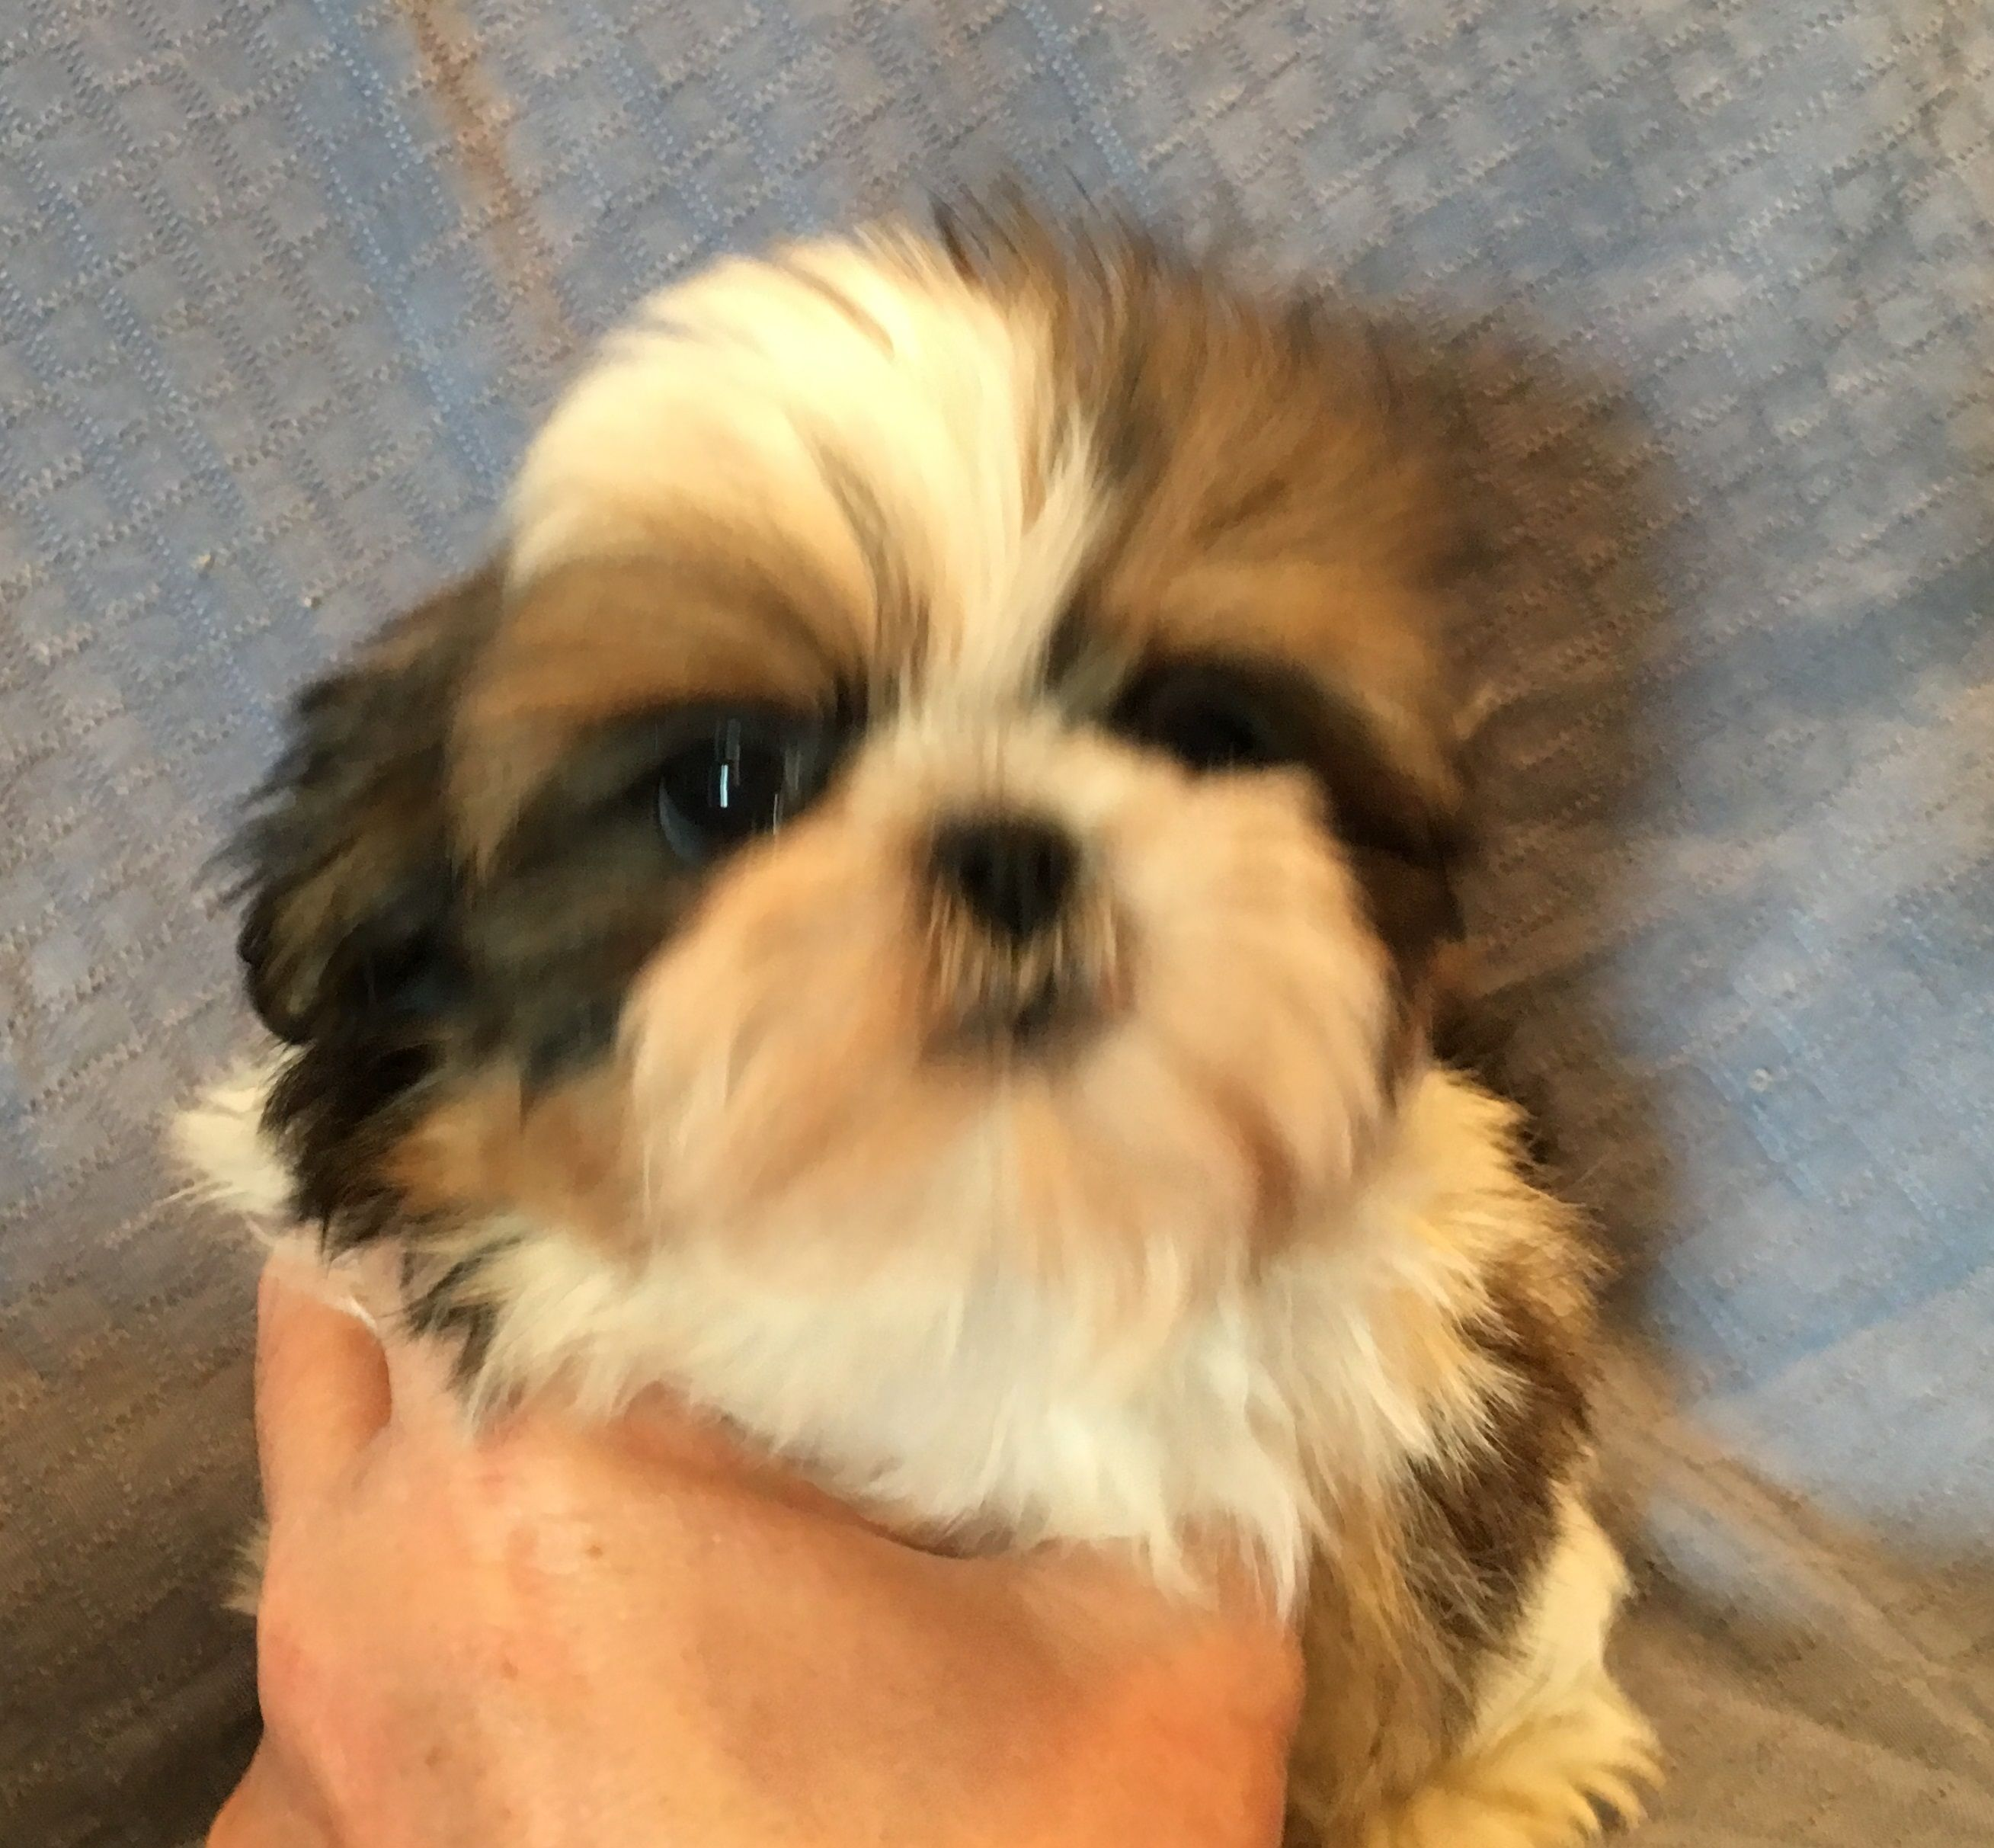 Available Fur Babies Fur Babies Shih Tzu Puppy Imperial Shih Tzu